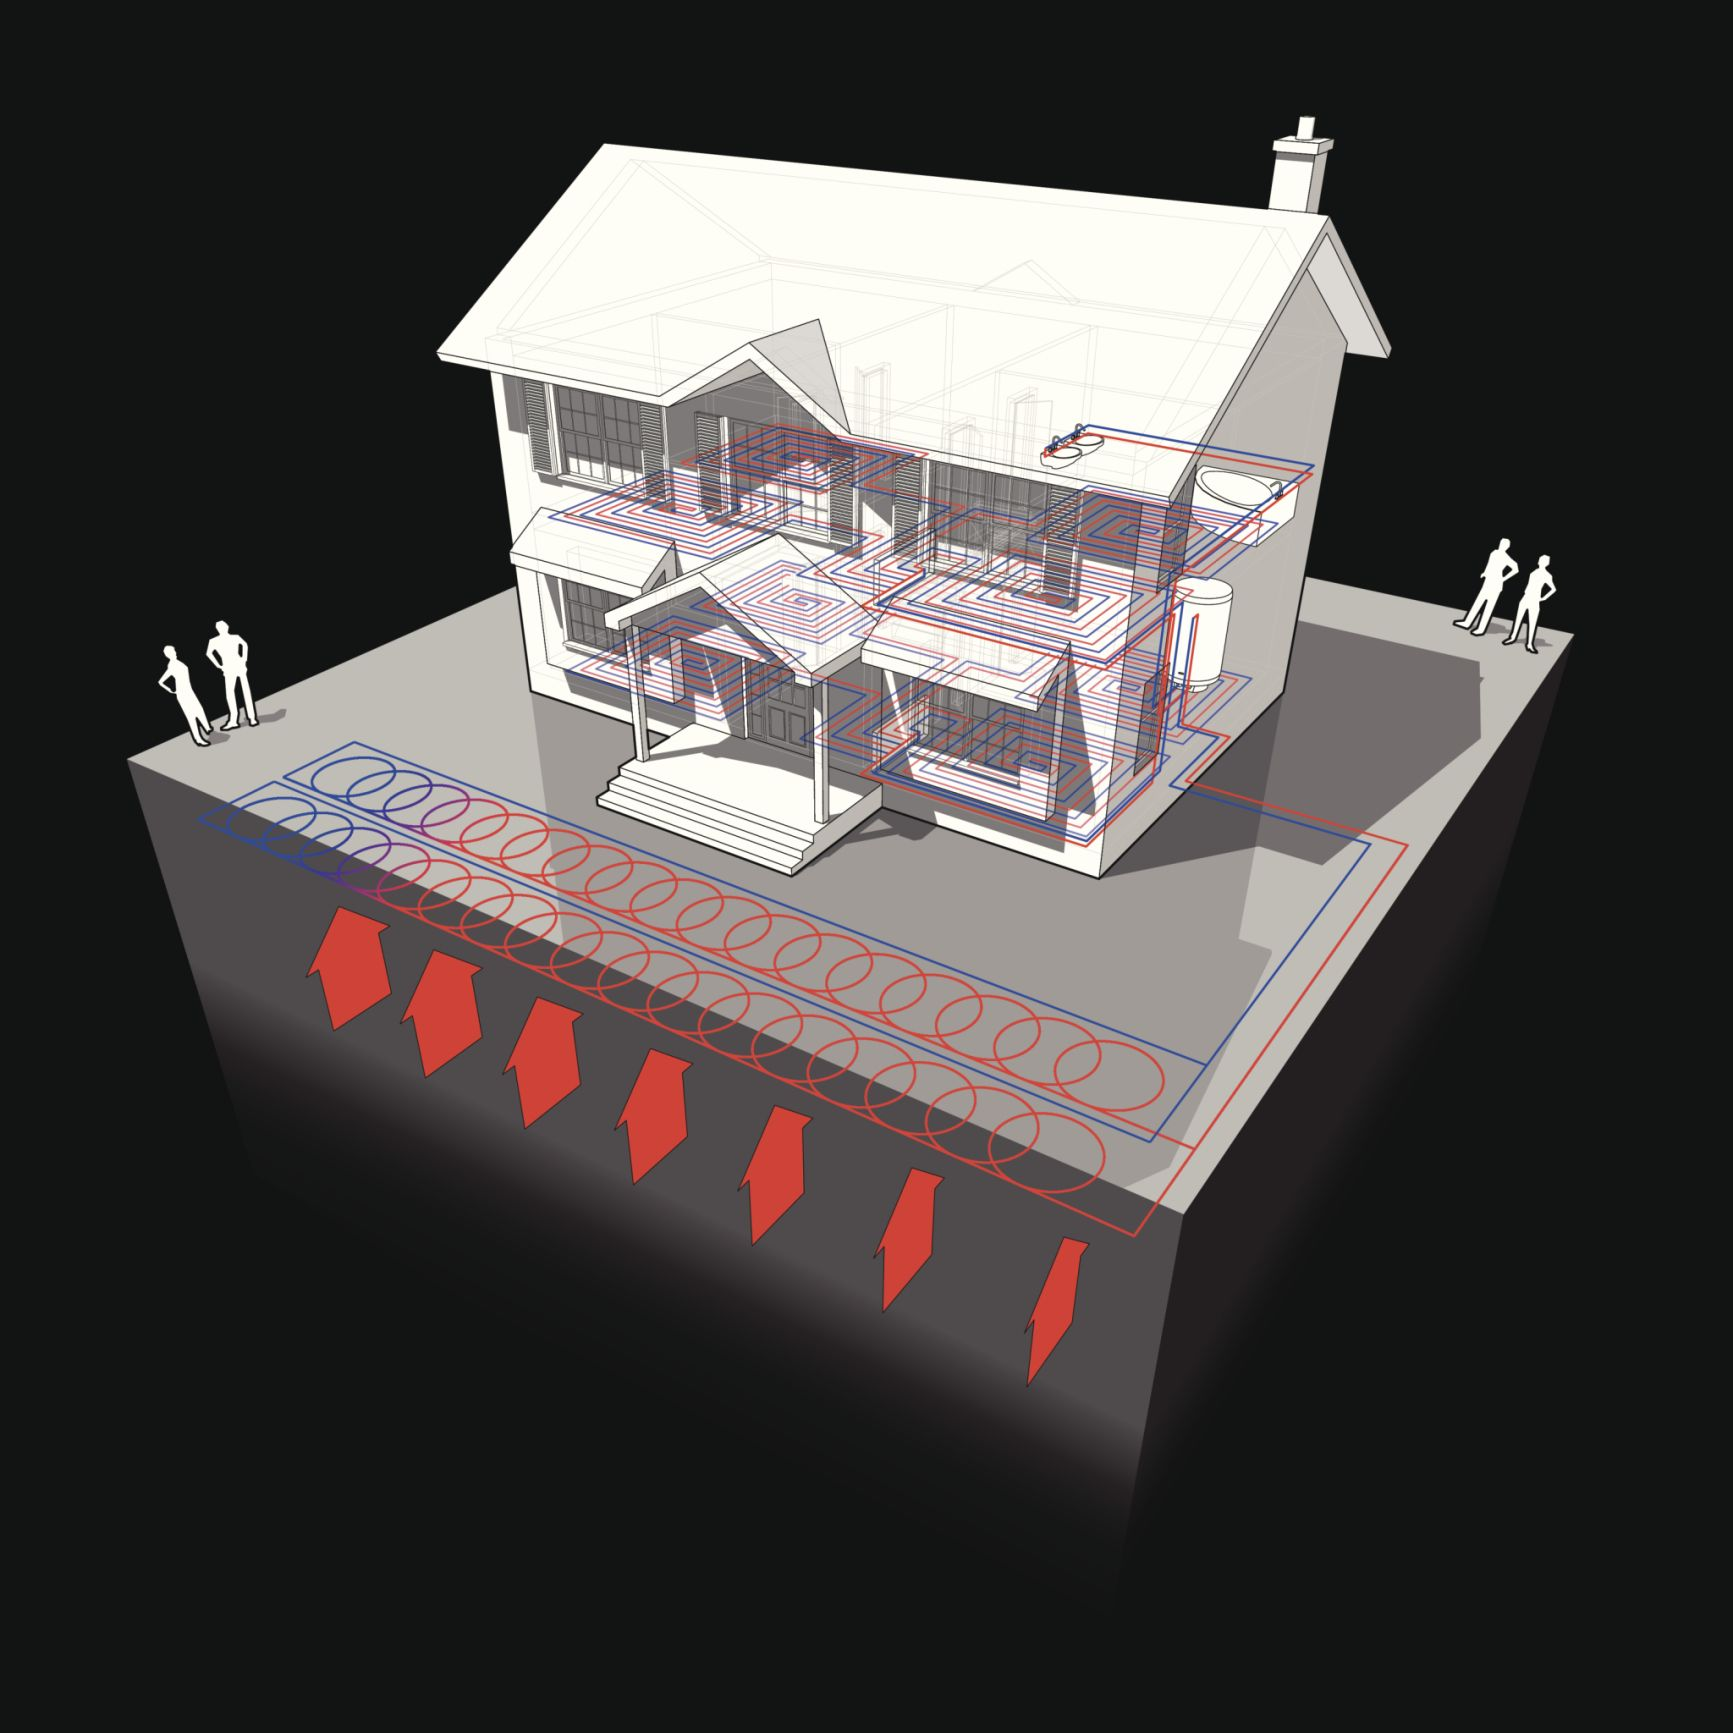 Have you recently installed a geothermal unit in your home